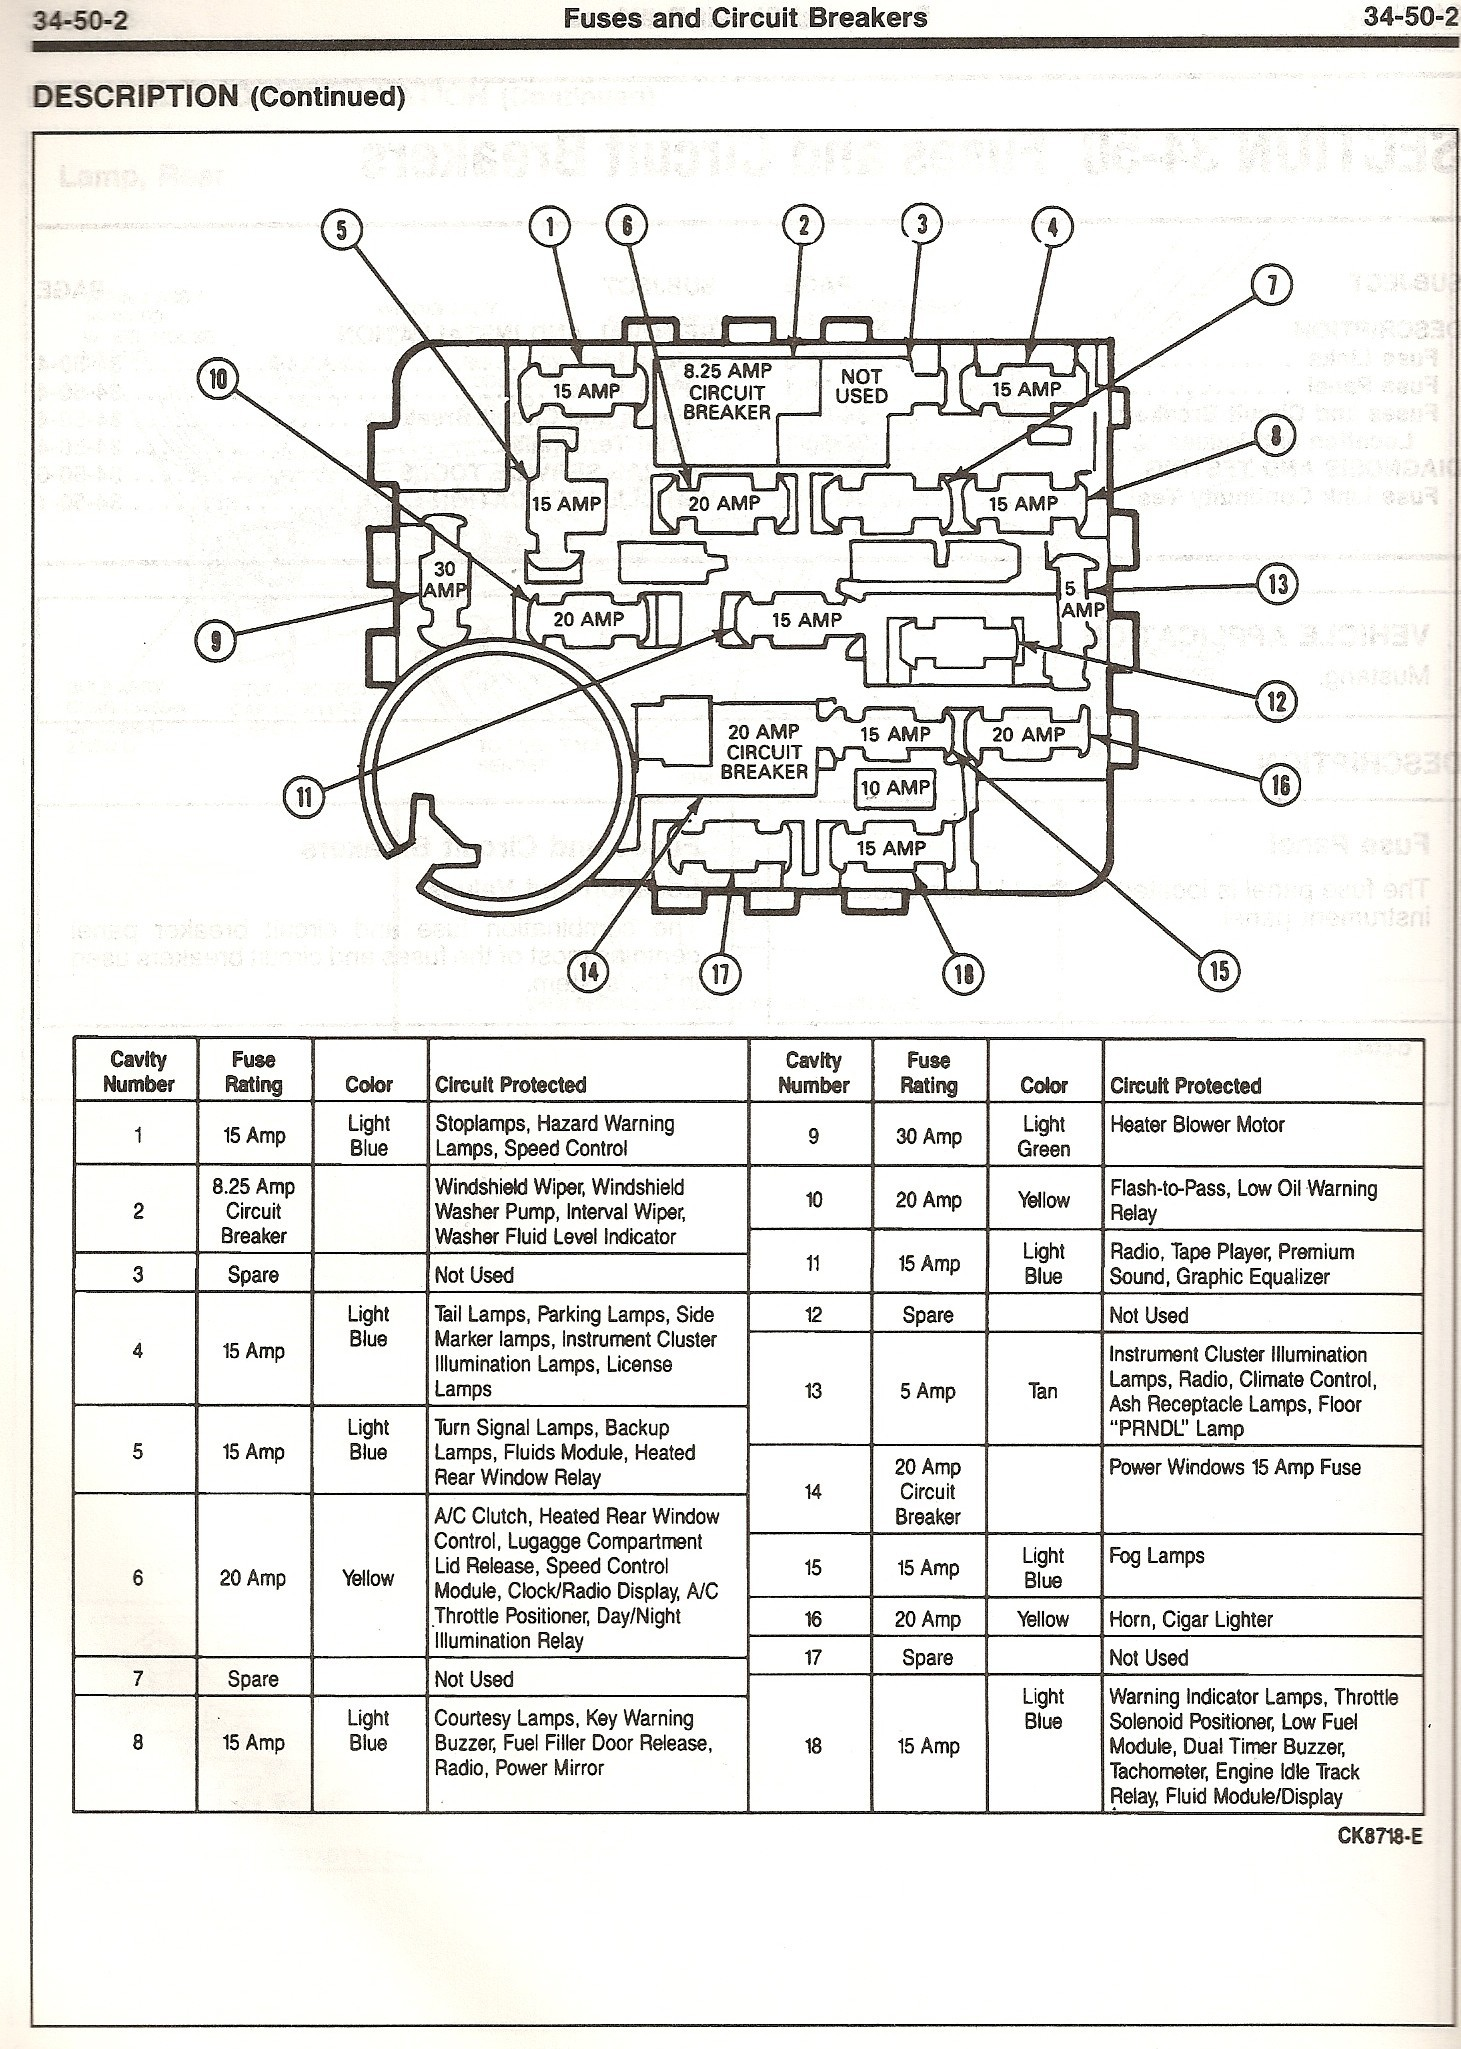 97 windstar fuse box online wiring diagram96 ford windstar wiring diagram wiring schematic diagram 97 windstar fuse